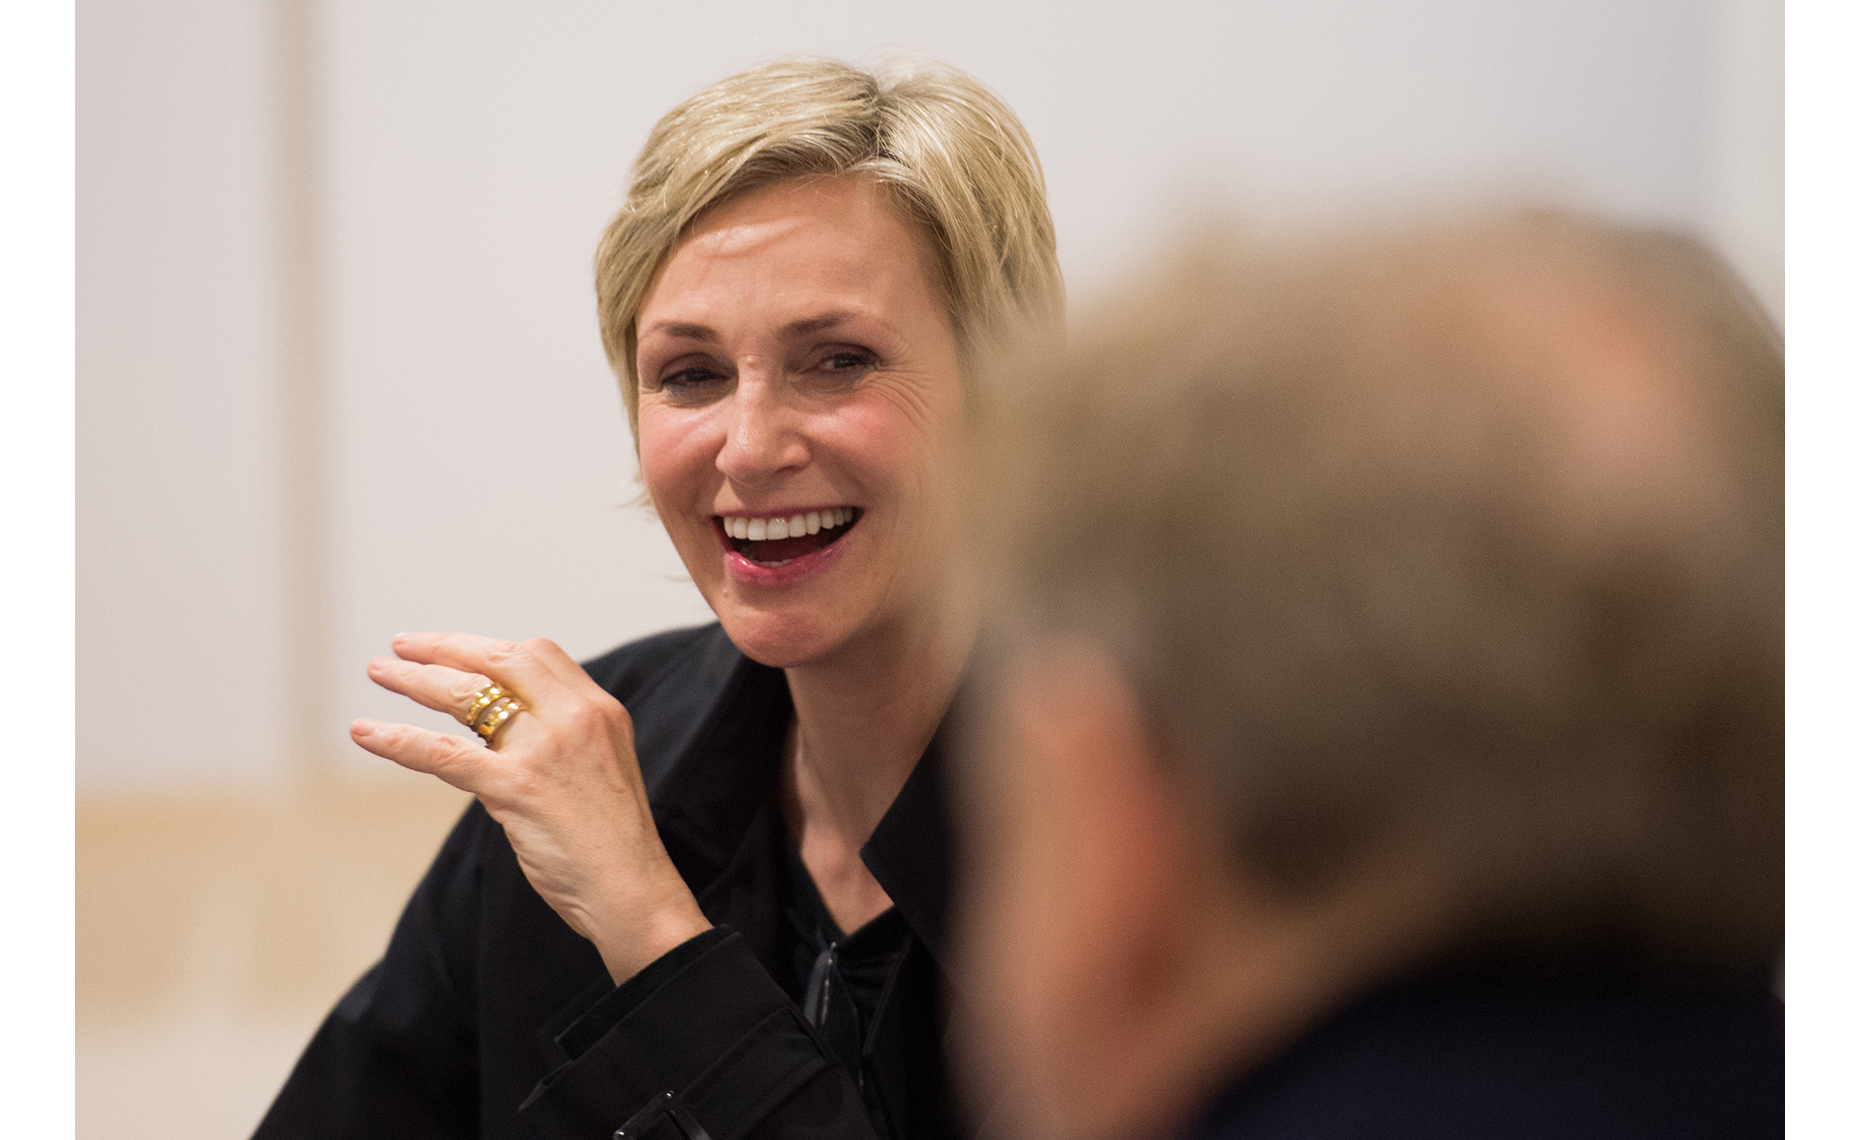 Jane Lynch | Washington DC Photographer Aaron Clamage